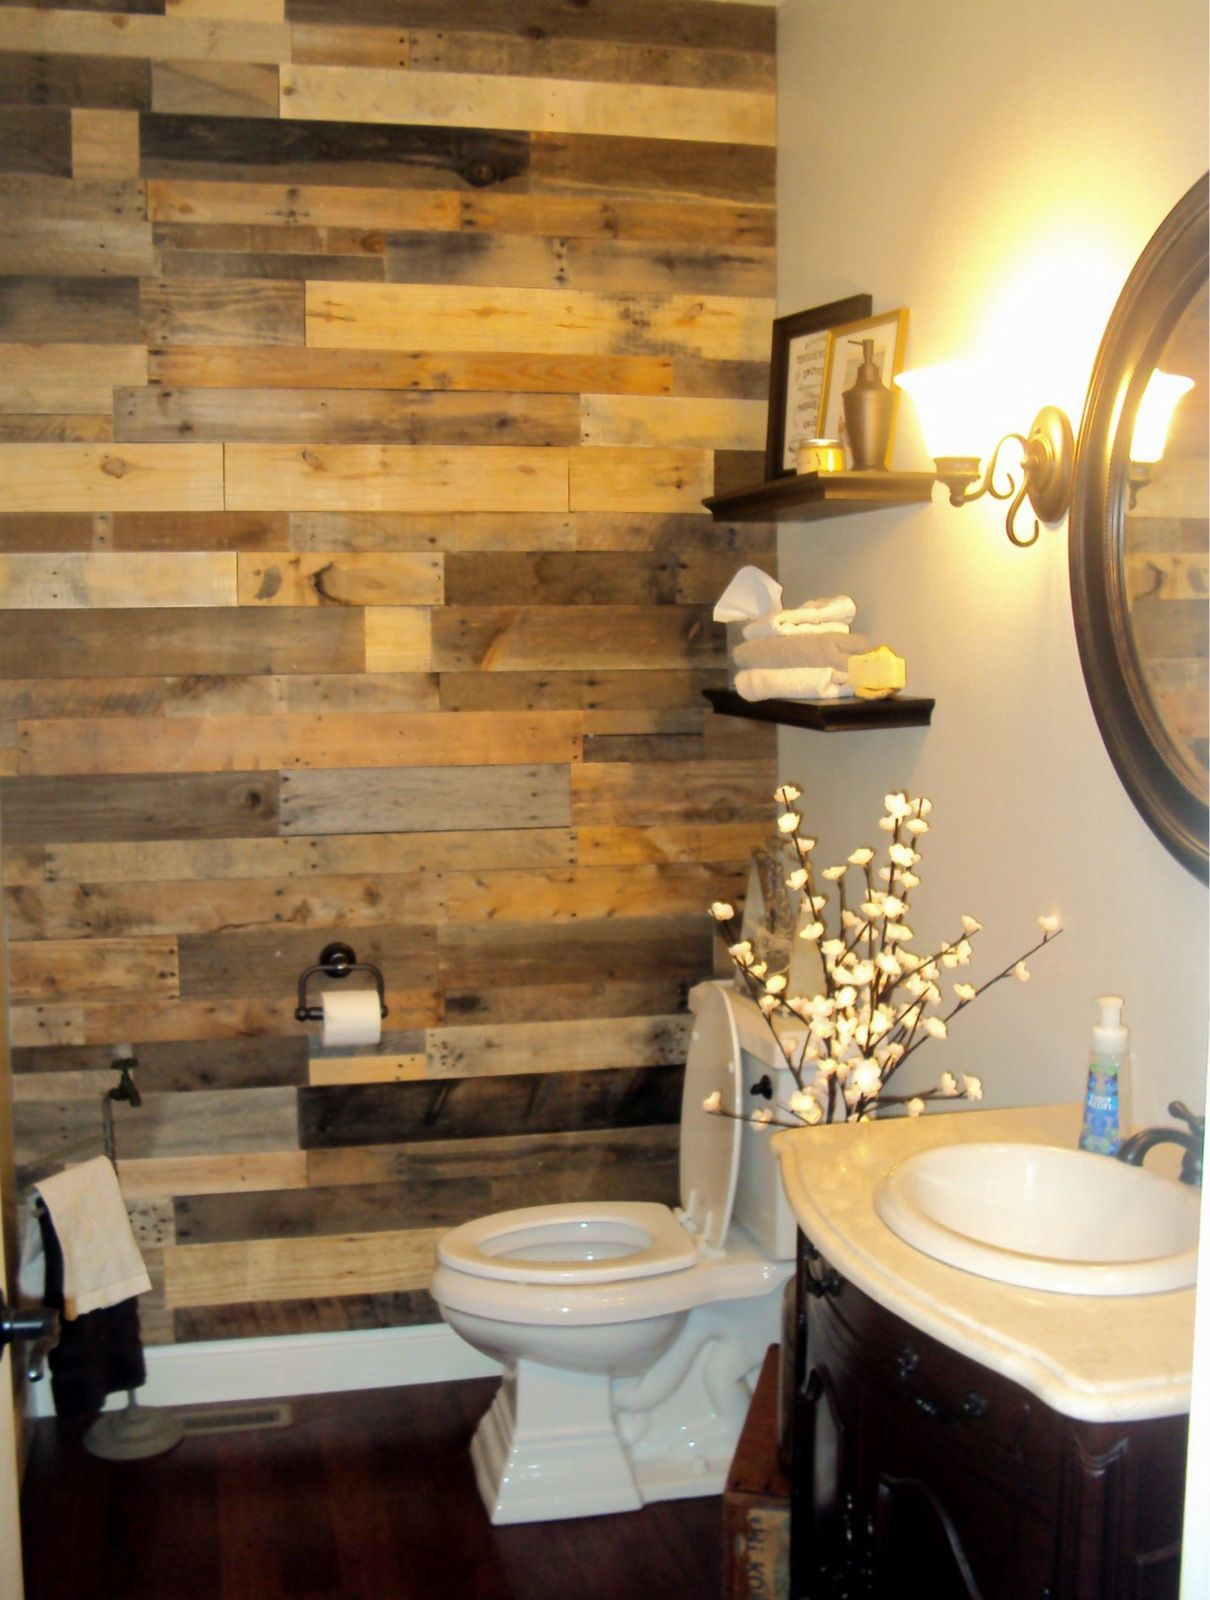 Simple Accent Wall Using Our Pallet Wood Wall Panels For A Bathroom Remodel From A Customer In Nebraska Bathroom Decoration Simple In 2019 Wood Panel Wal